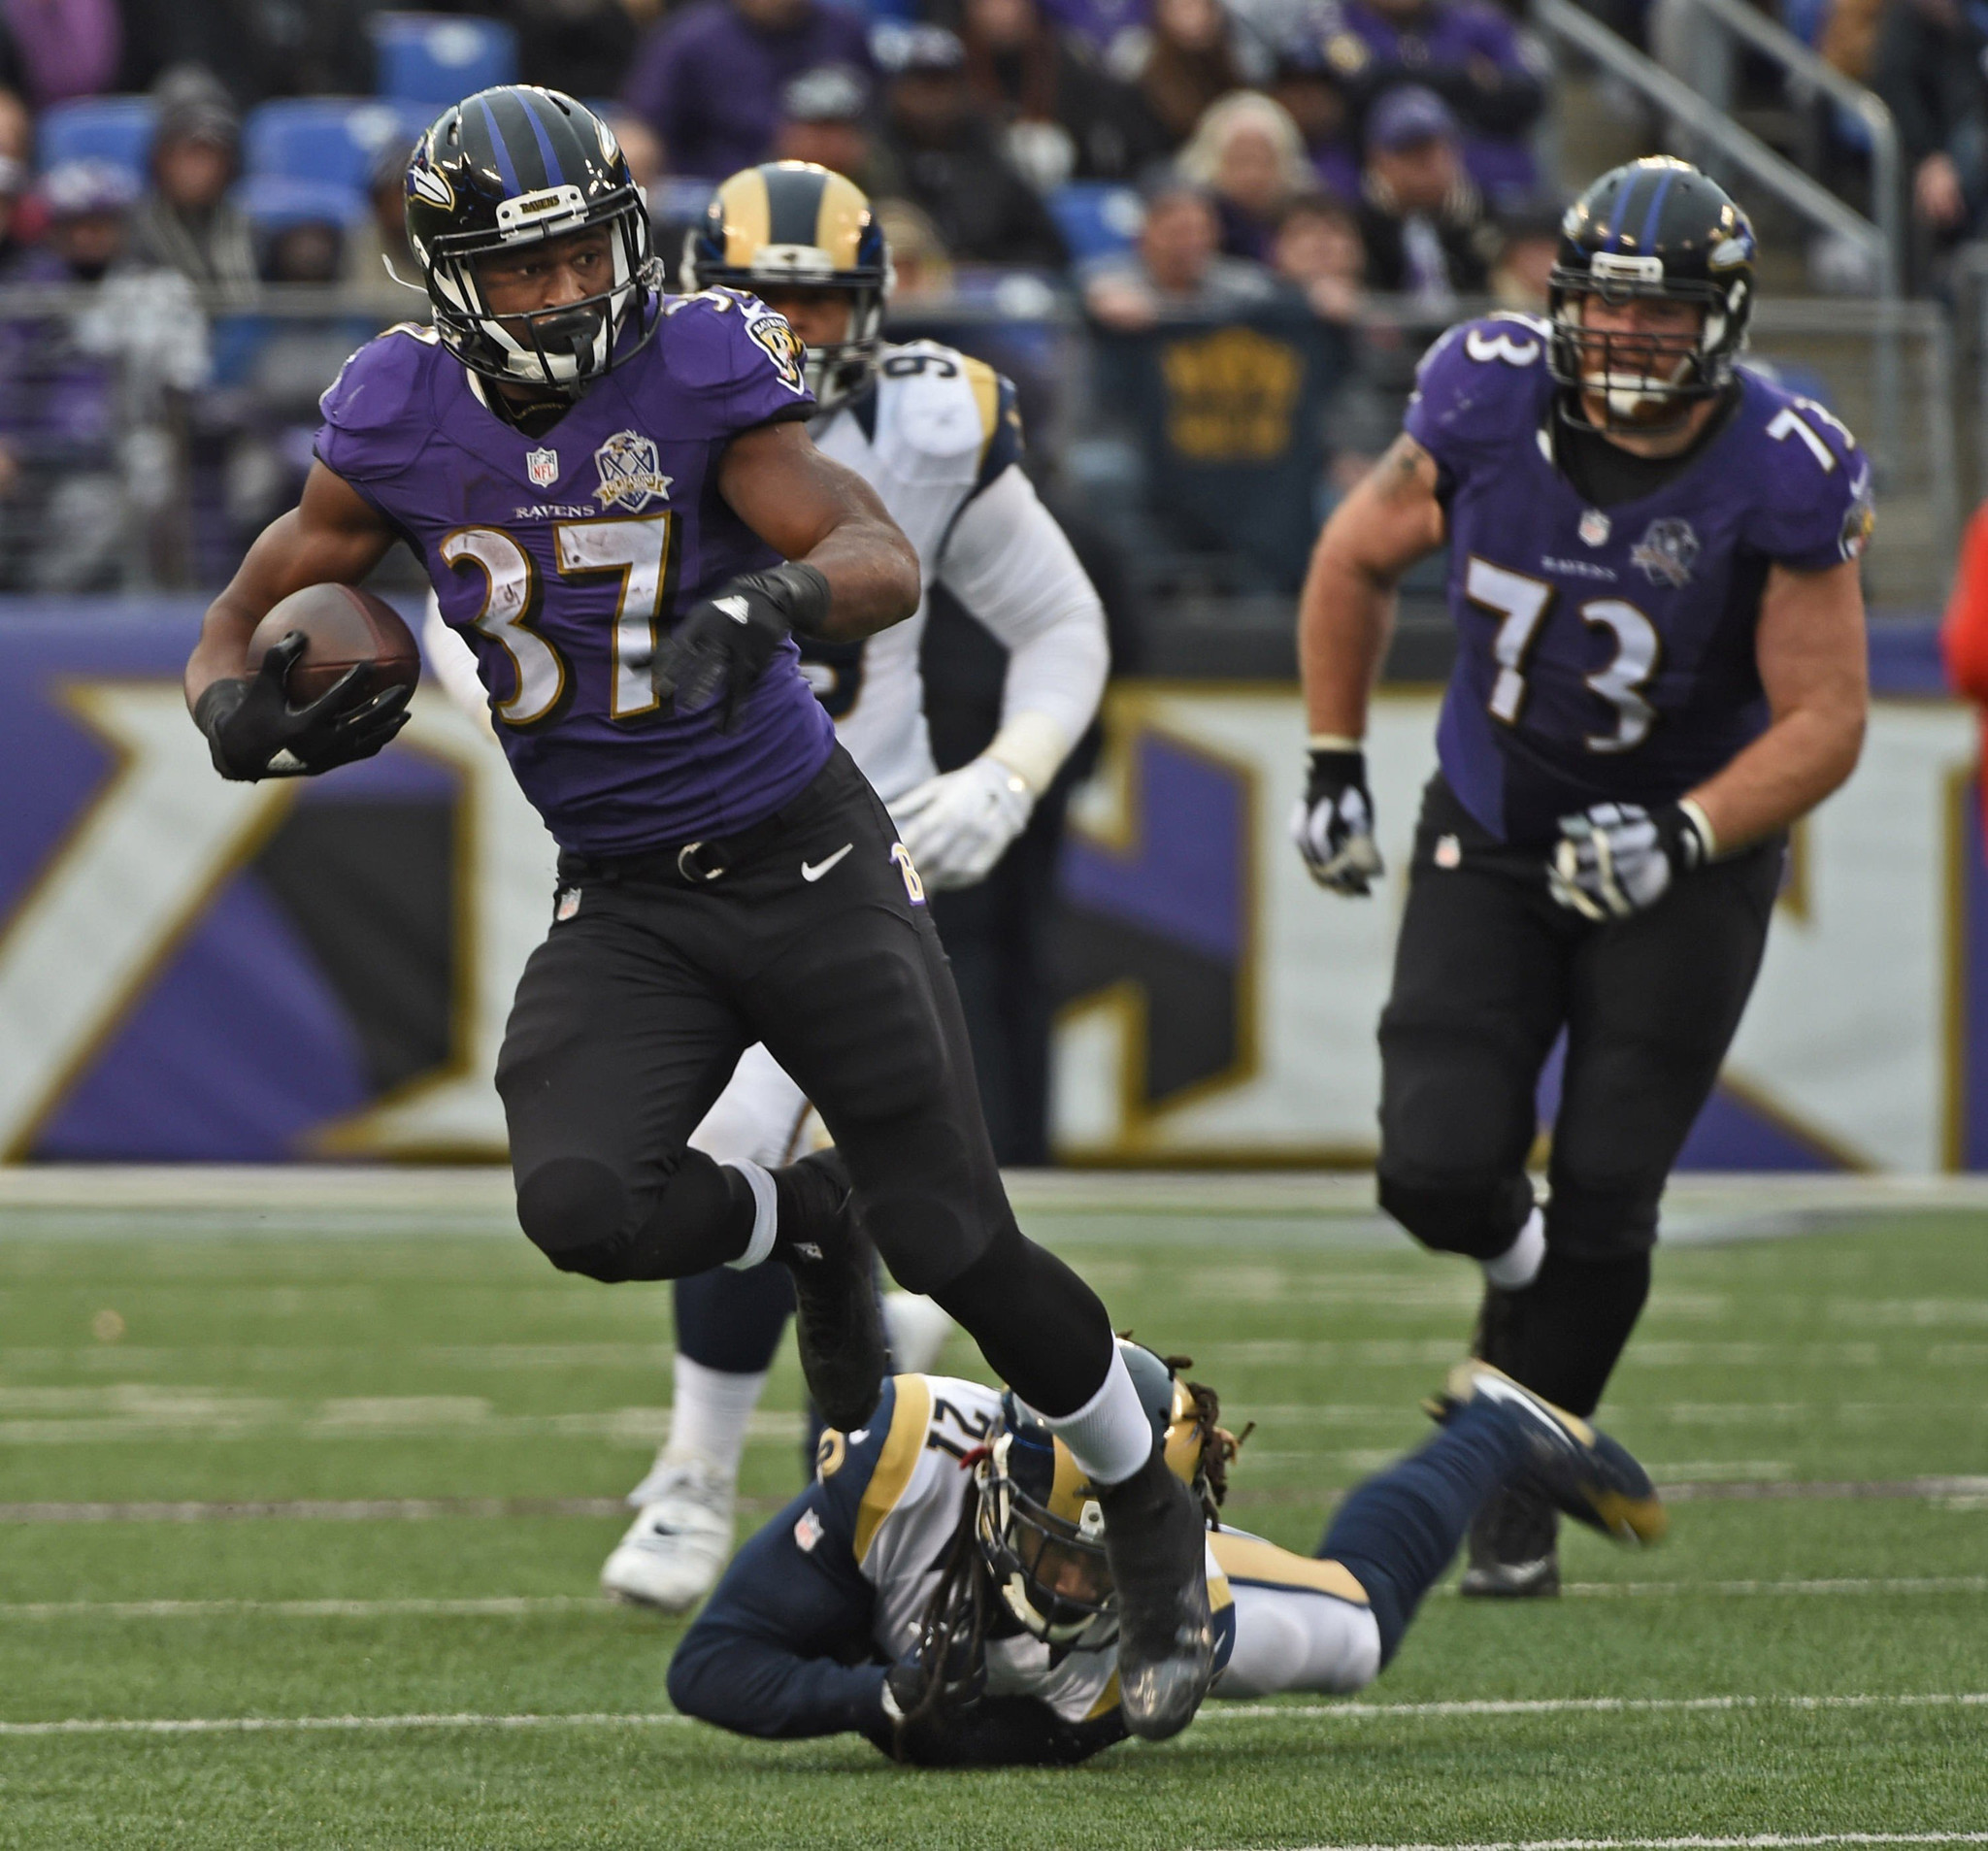 Bal-ravens-news-notes-and-opinions-20160920